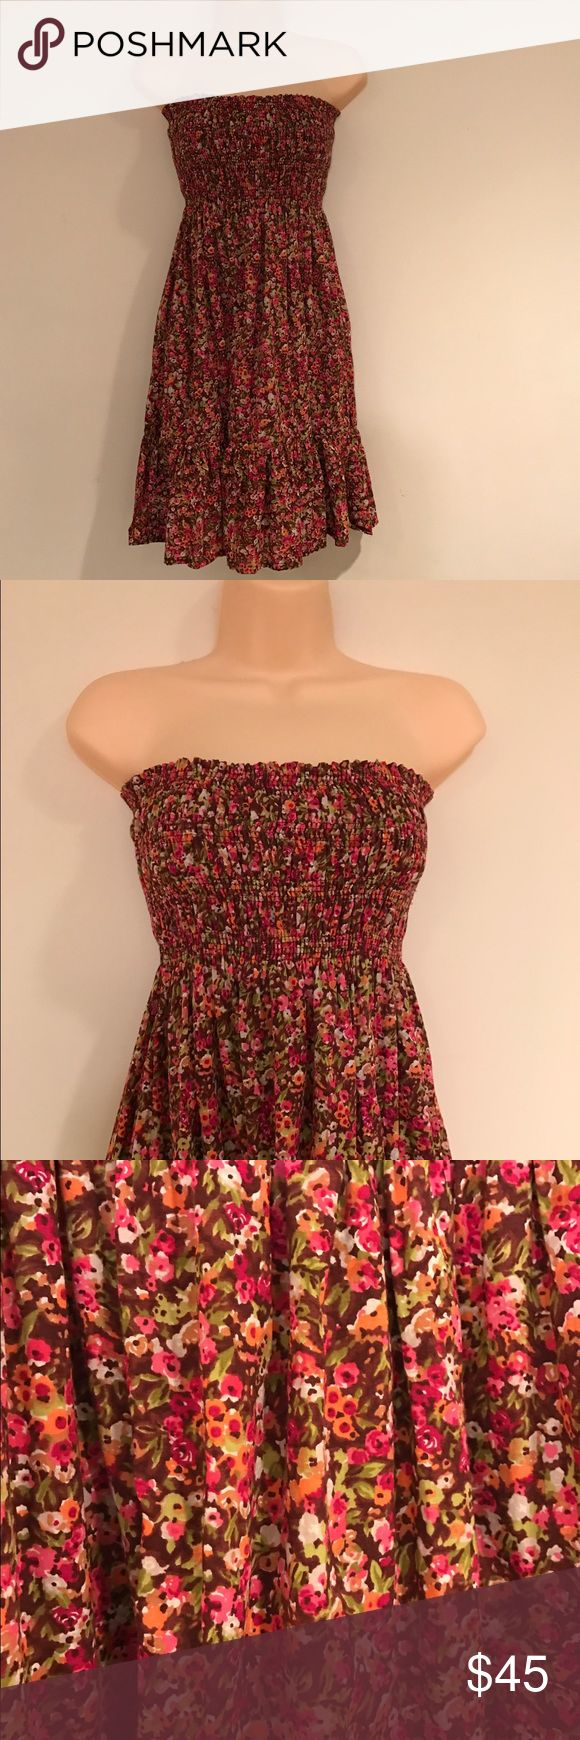 Floral Summer Dress Victoria's Secret website purchased. Worn once. Beautiful floral print, strapless, tube top dress. Perfect paired with cowboy boots, also listed in my closet, sold separately. No trades, buy now or make an offer. Moda International Dresses Strapless